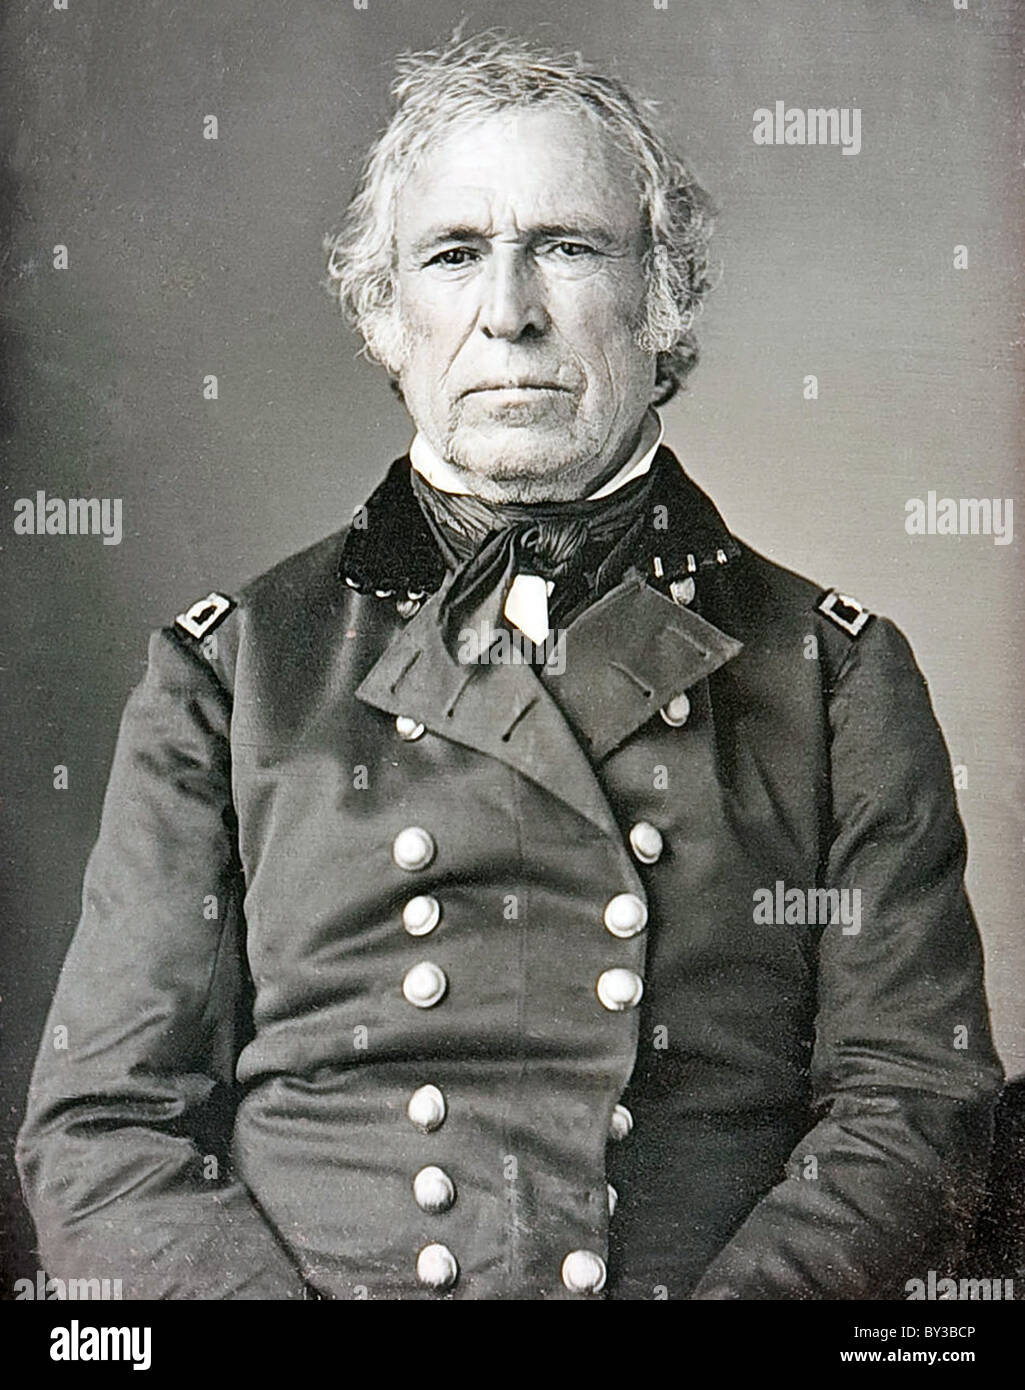 Zachary Taylor, President Zachary Taylor, the 12th President of the United States - Stock Image